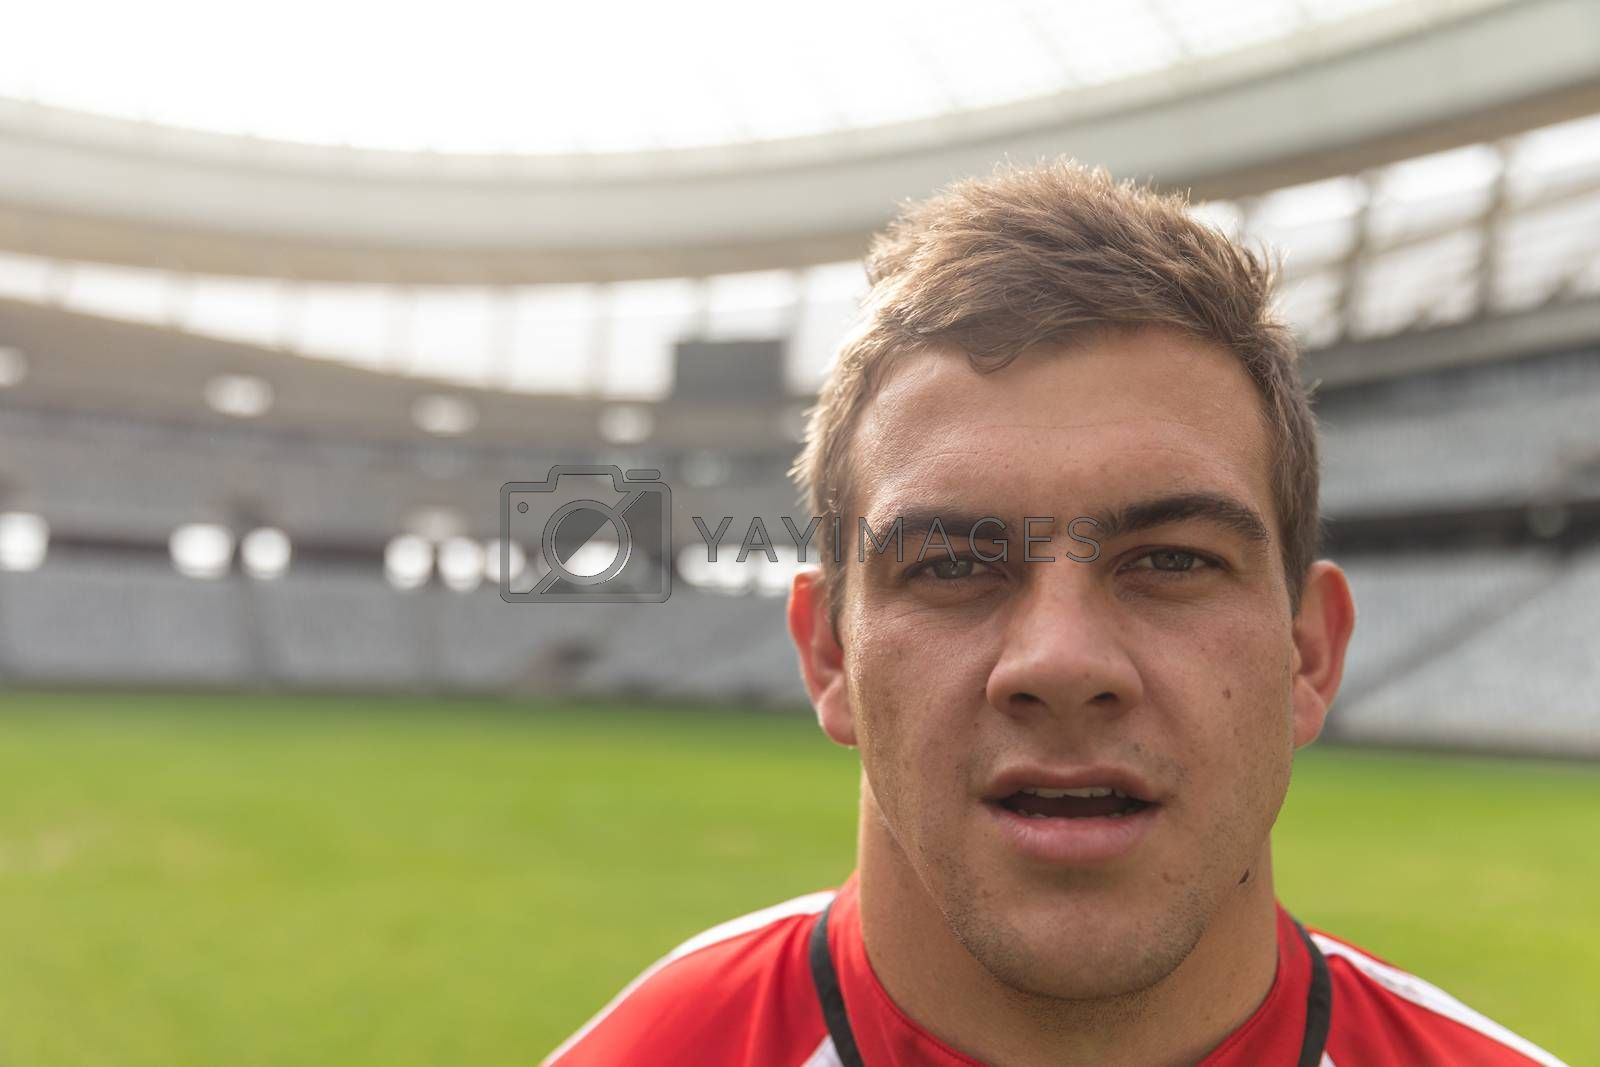 Portrait close up of handsome Caucasian rugby player looking at camera in the stadium.